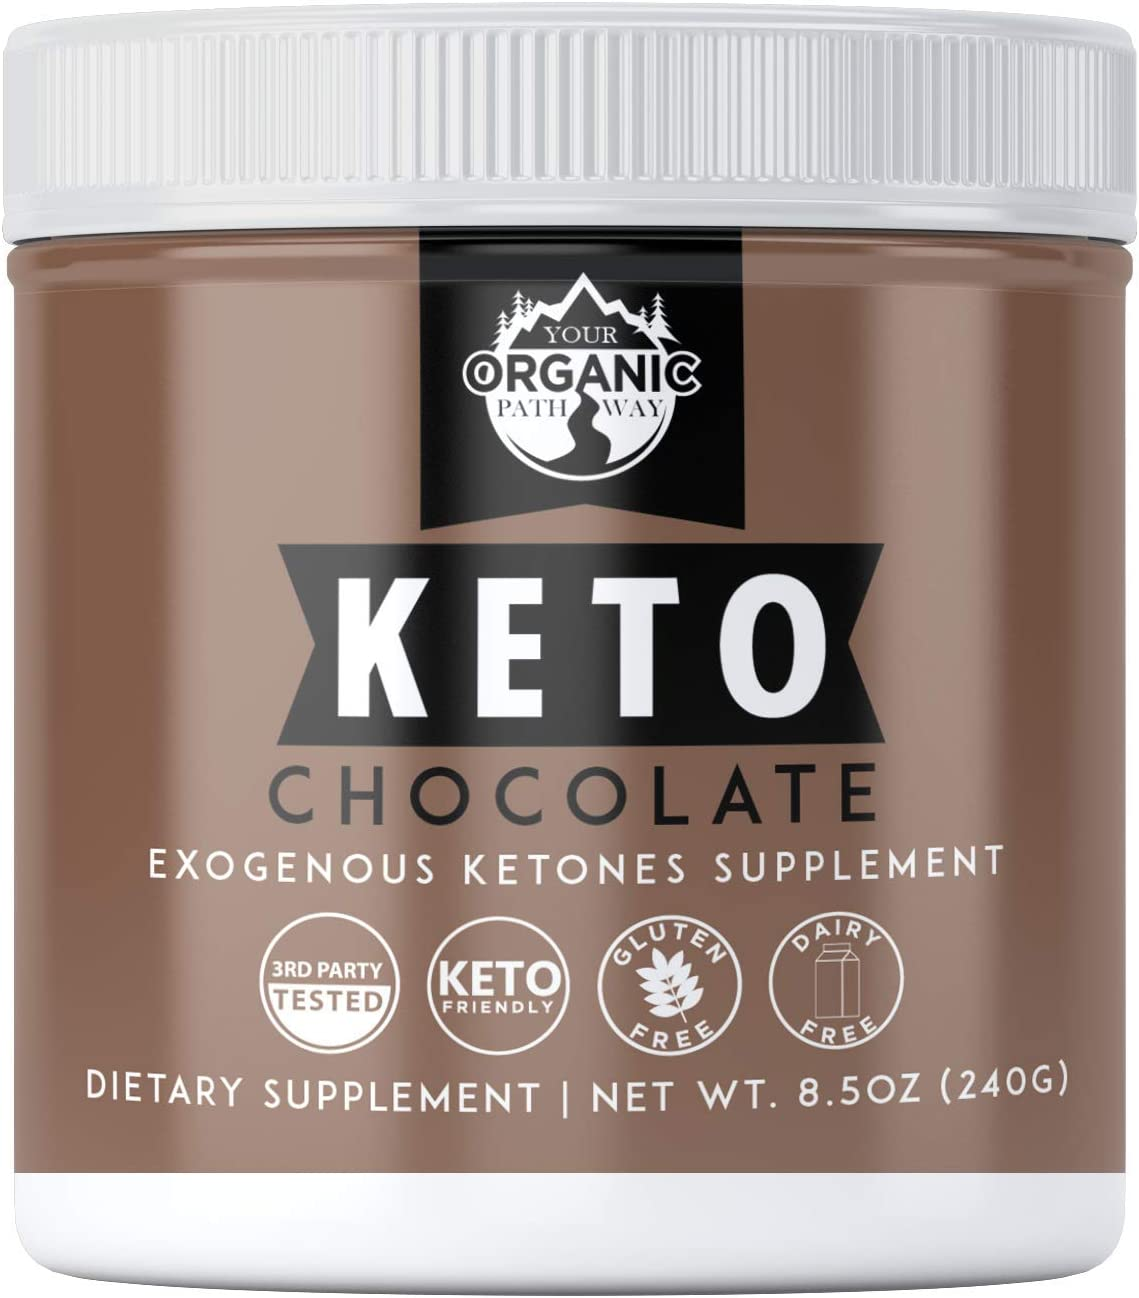 Your Organic Pathway Exogenous Ketones Base BHB Salts Supplement, Keto Chocolate Powder for Keto Diet, Weight Loss Energy Support- Beta-Hydroxybutyrate for Ketosis Ketone Boost